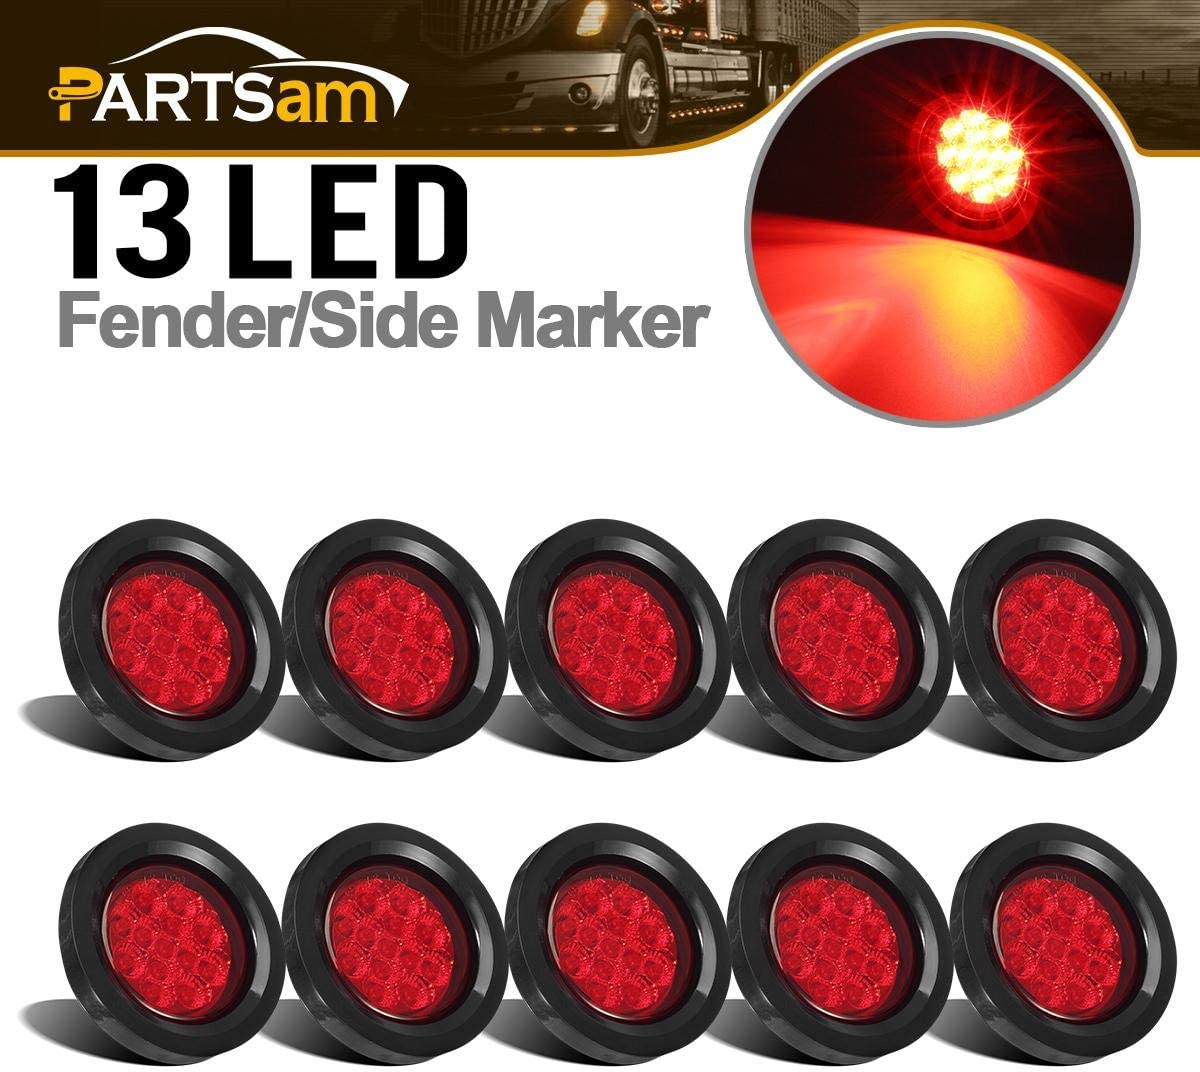 Partsam 10Pcs 2.5 Round Red Led and Side Marker Lights Kit 13 Diodes with Light Grommet and Wire Pigtail Truck Trailer Rv Flush Mount Waterproof 12V Sealed 2.5 Round Led Marker Lights